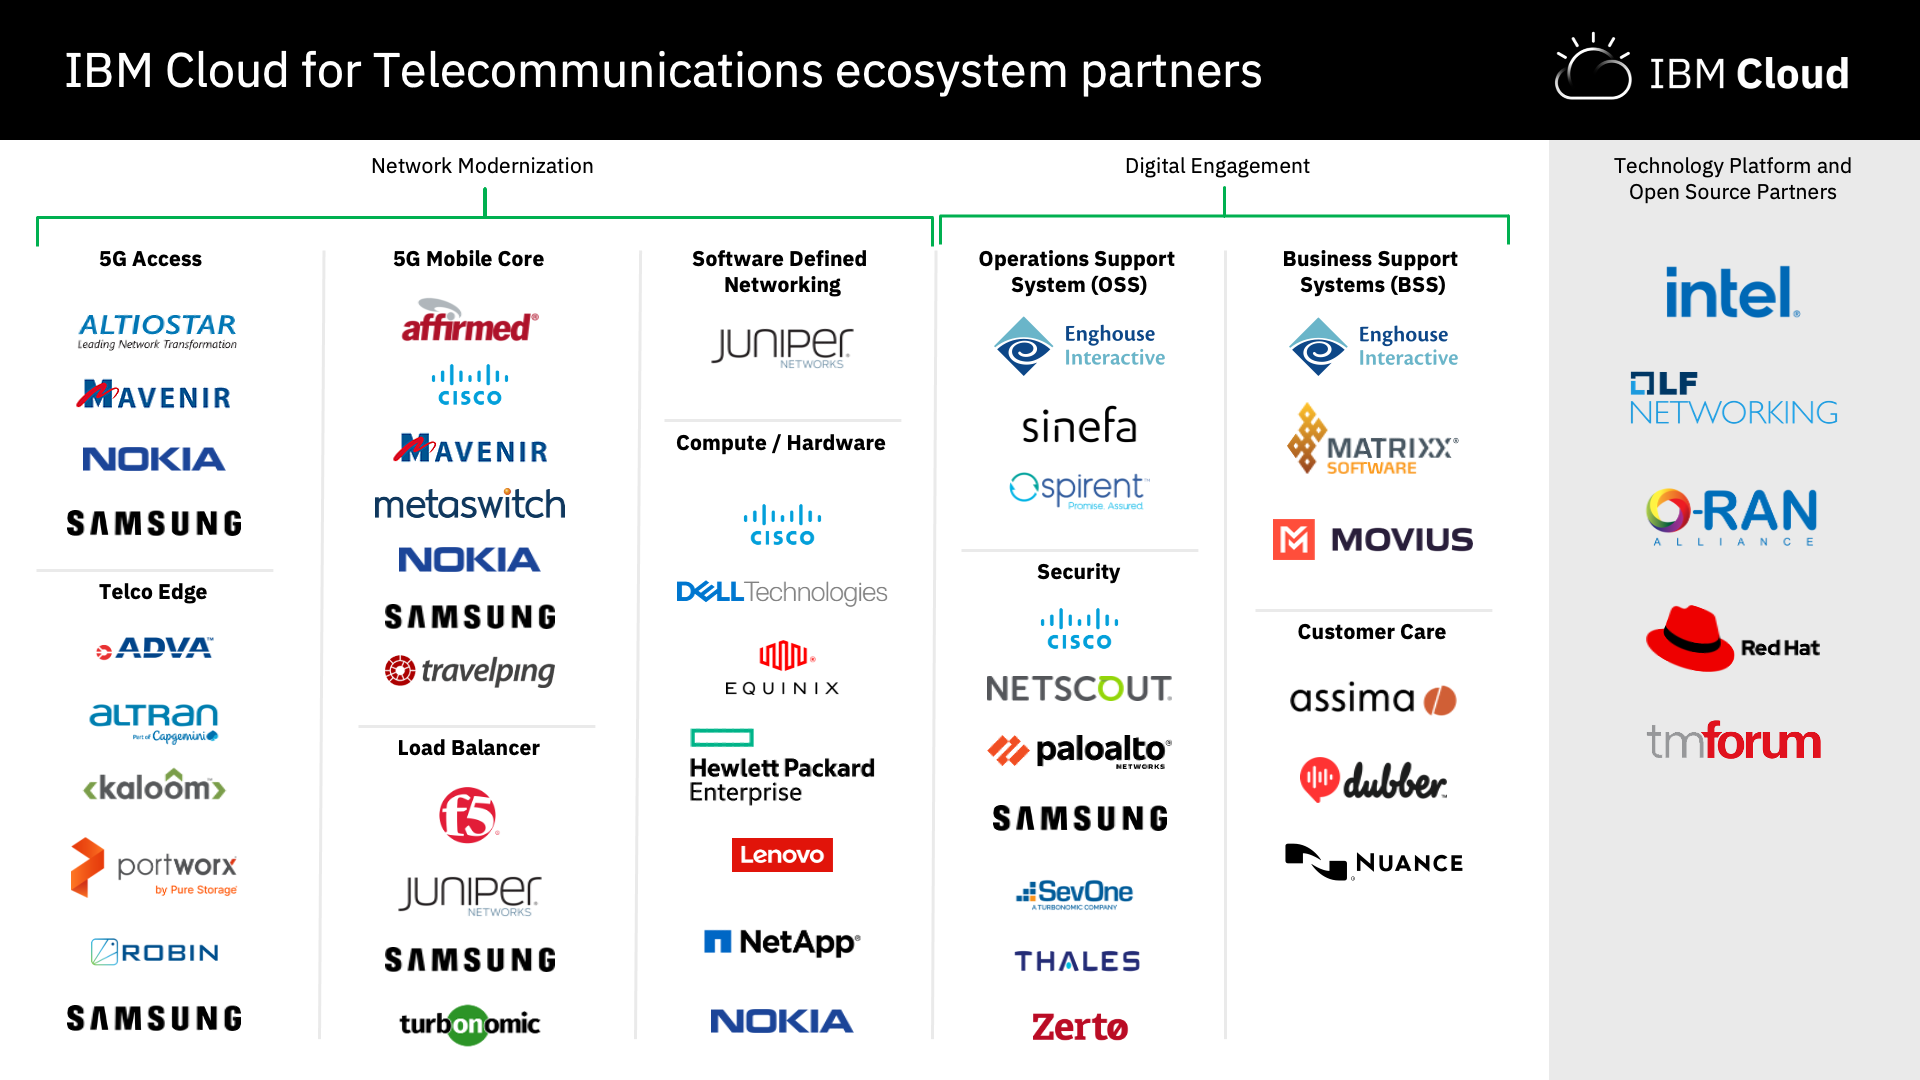 Introducing IBM Cloud for Telecommunications with 35+ Partners Committed to Join IBM's Ecosystem and Help Drive Business Transformation - Image 1